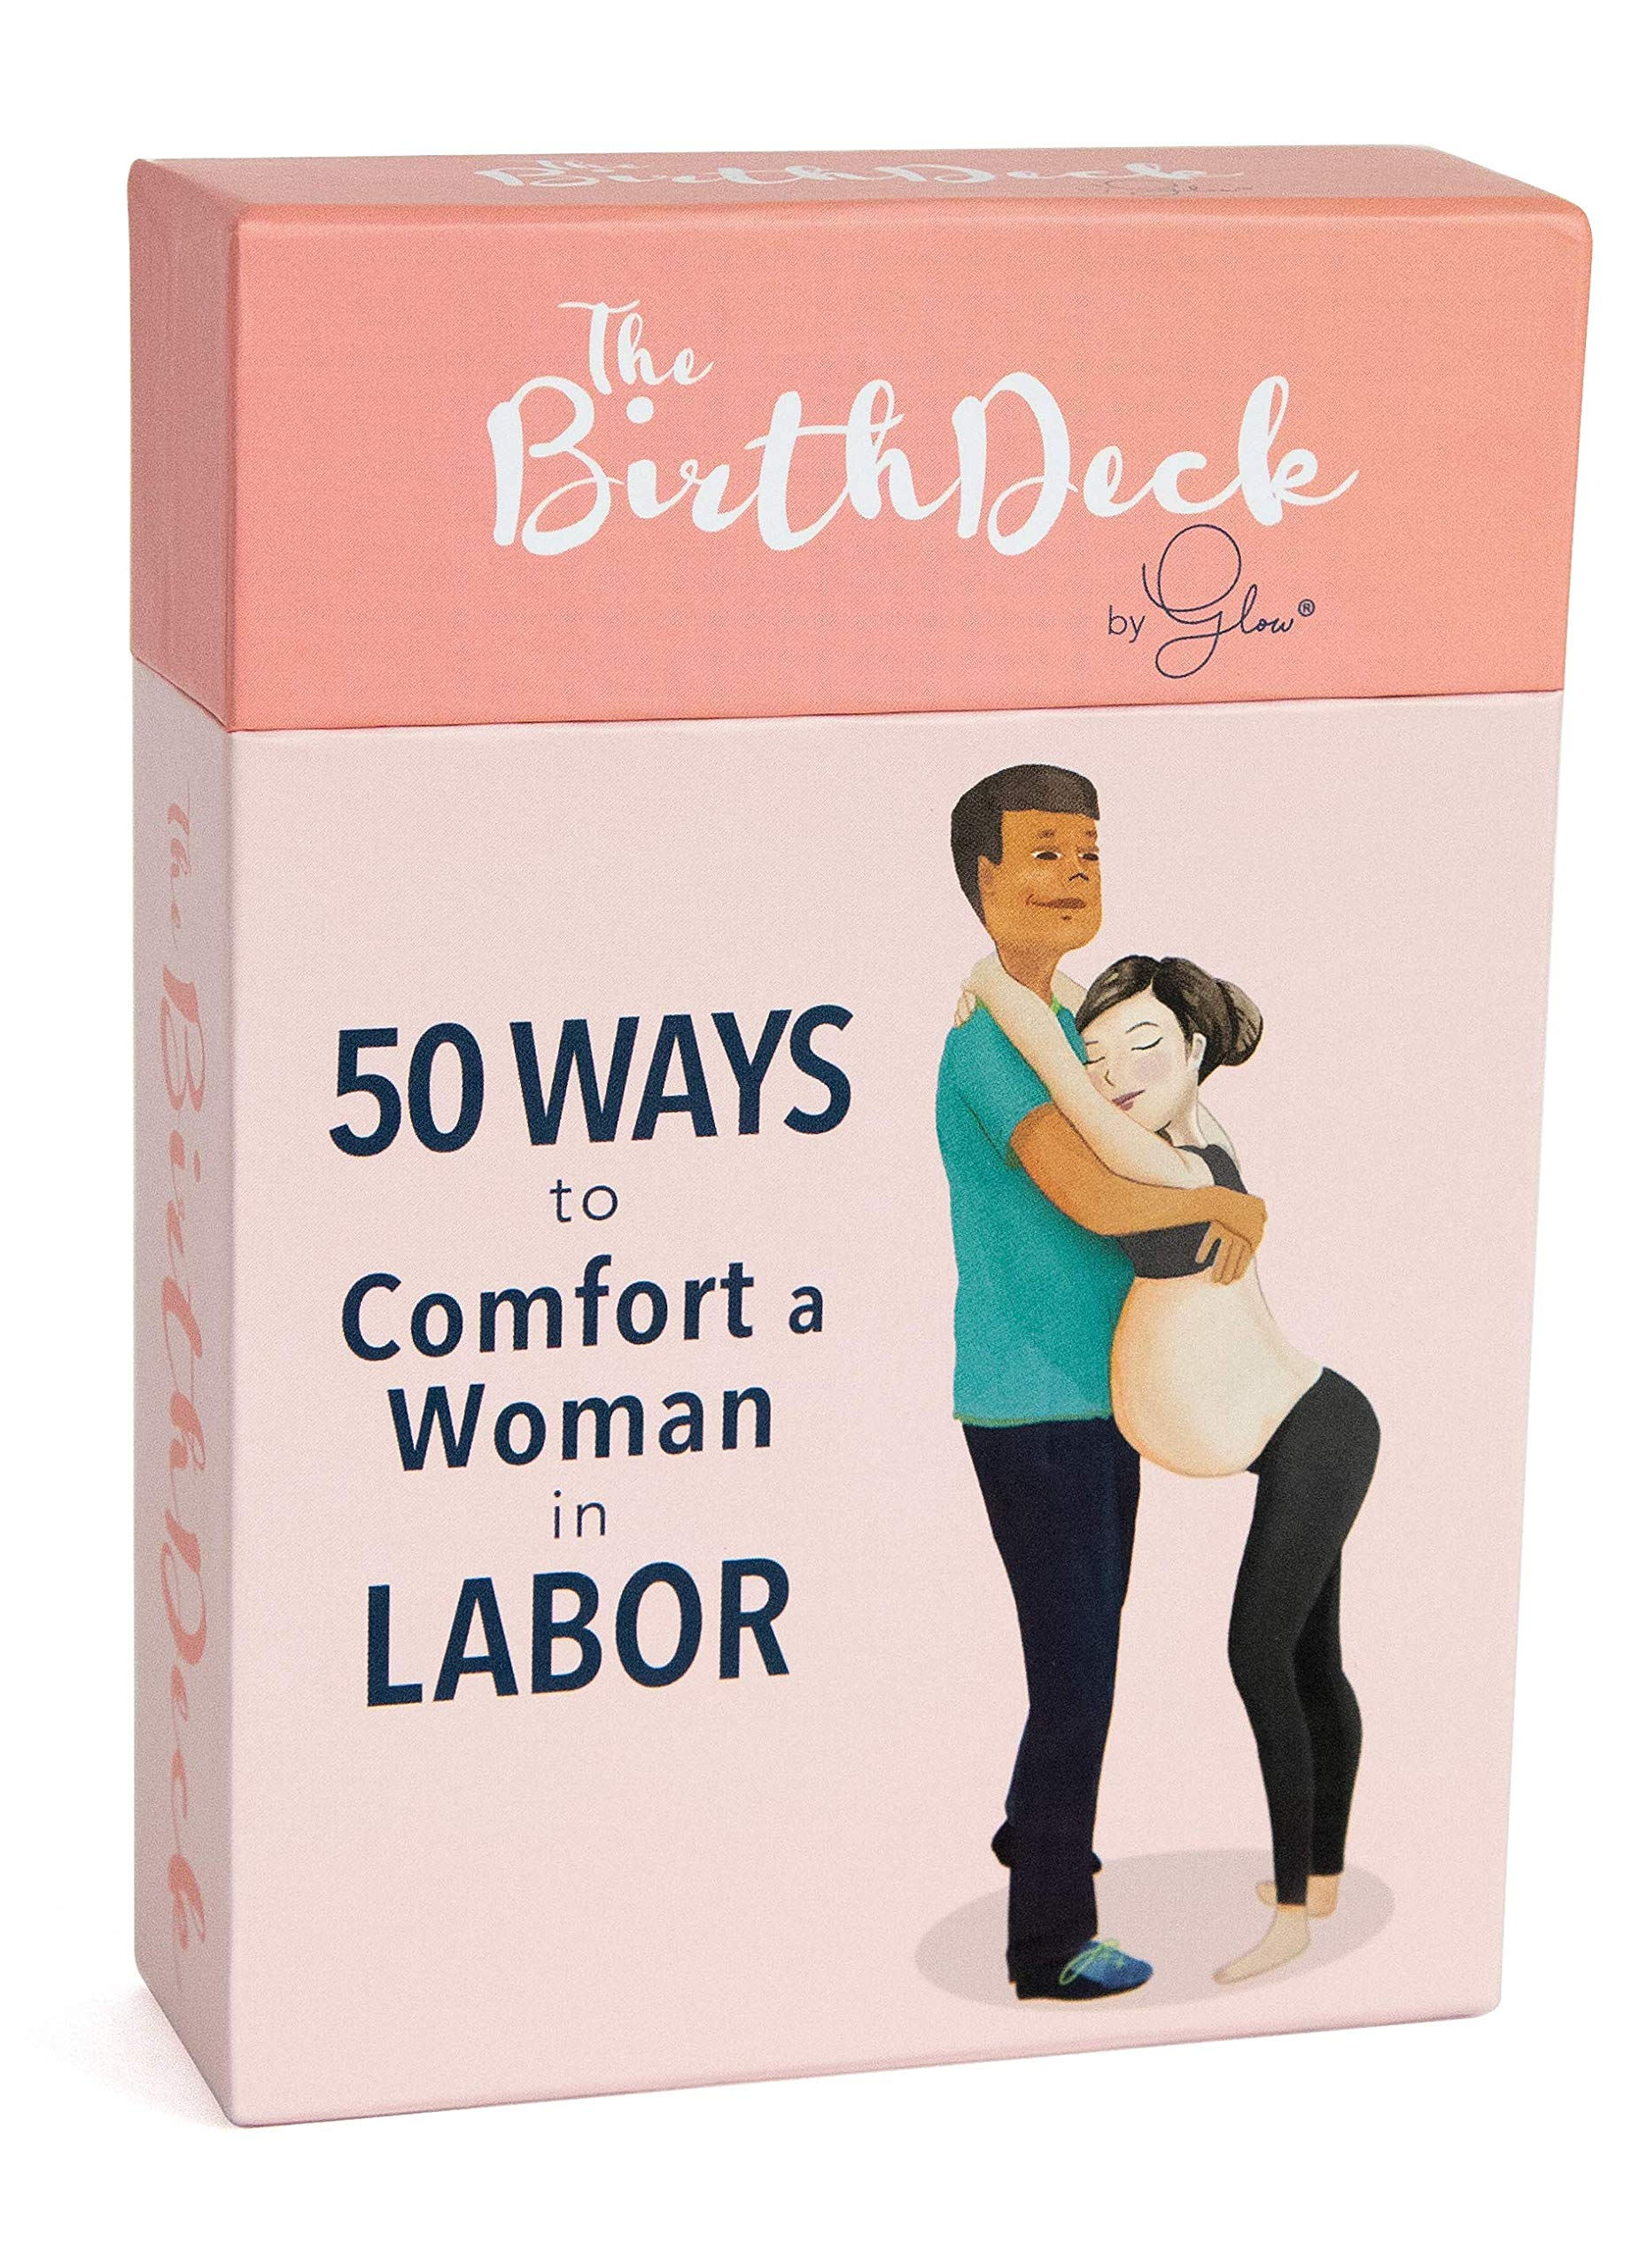 The Birth Deck by Glow: 50 Ways to Comfort a Woman in Labor, Must Have Baby Shower Registry Gift for Mom and Dad, Girl and Boy, Reduce Pain Like a Doula